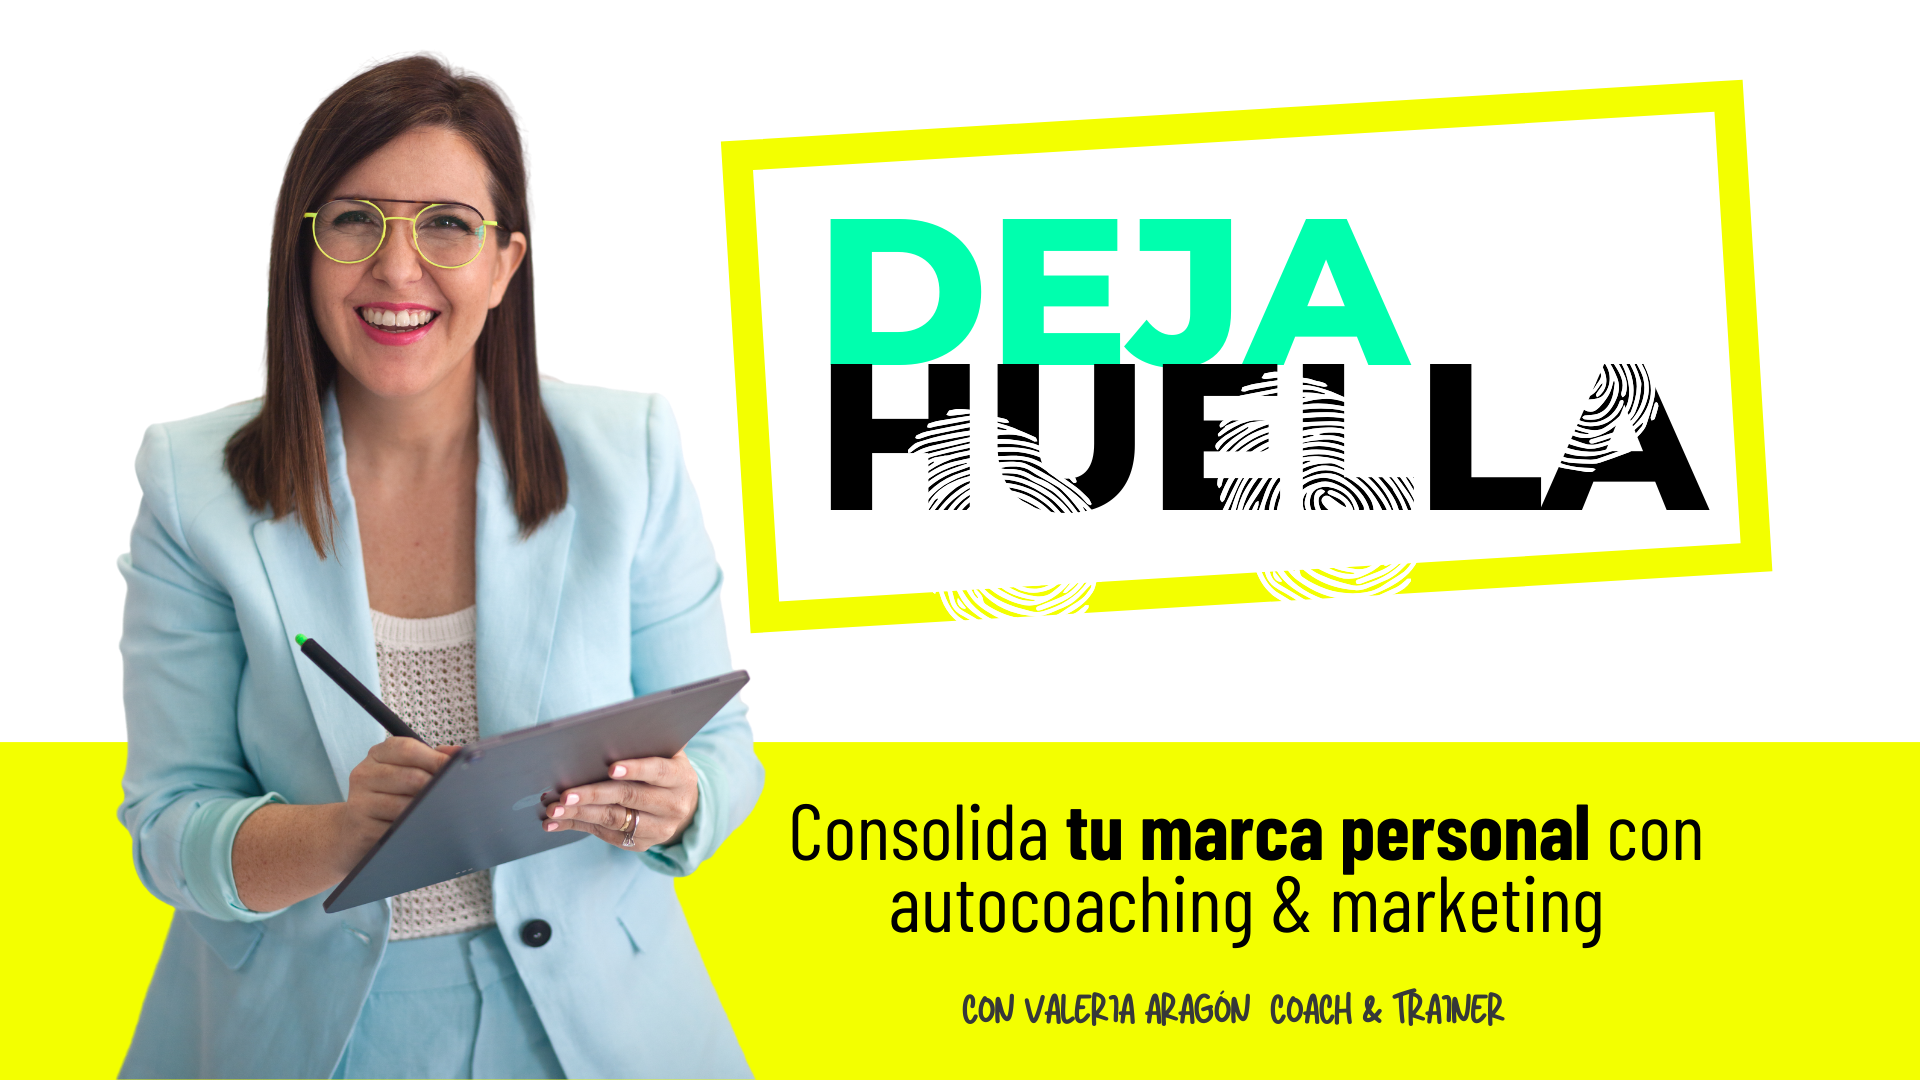 DEJA HUELLA: Consolida tu marca personal con autocoaching y marketing